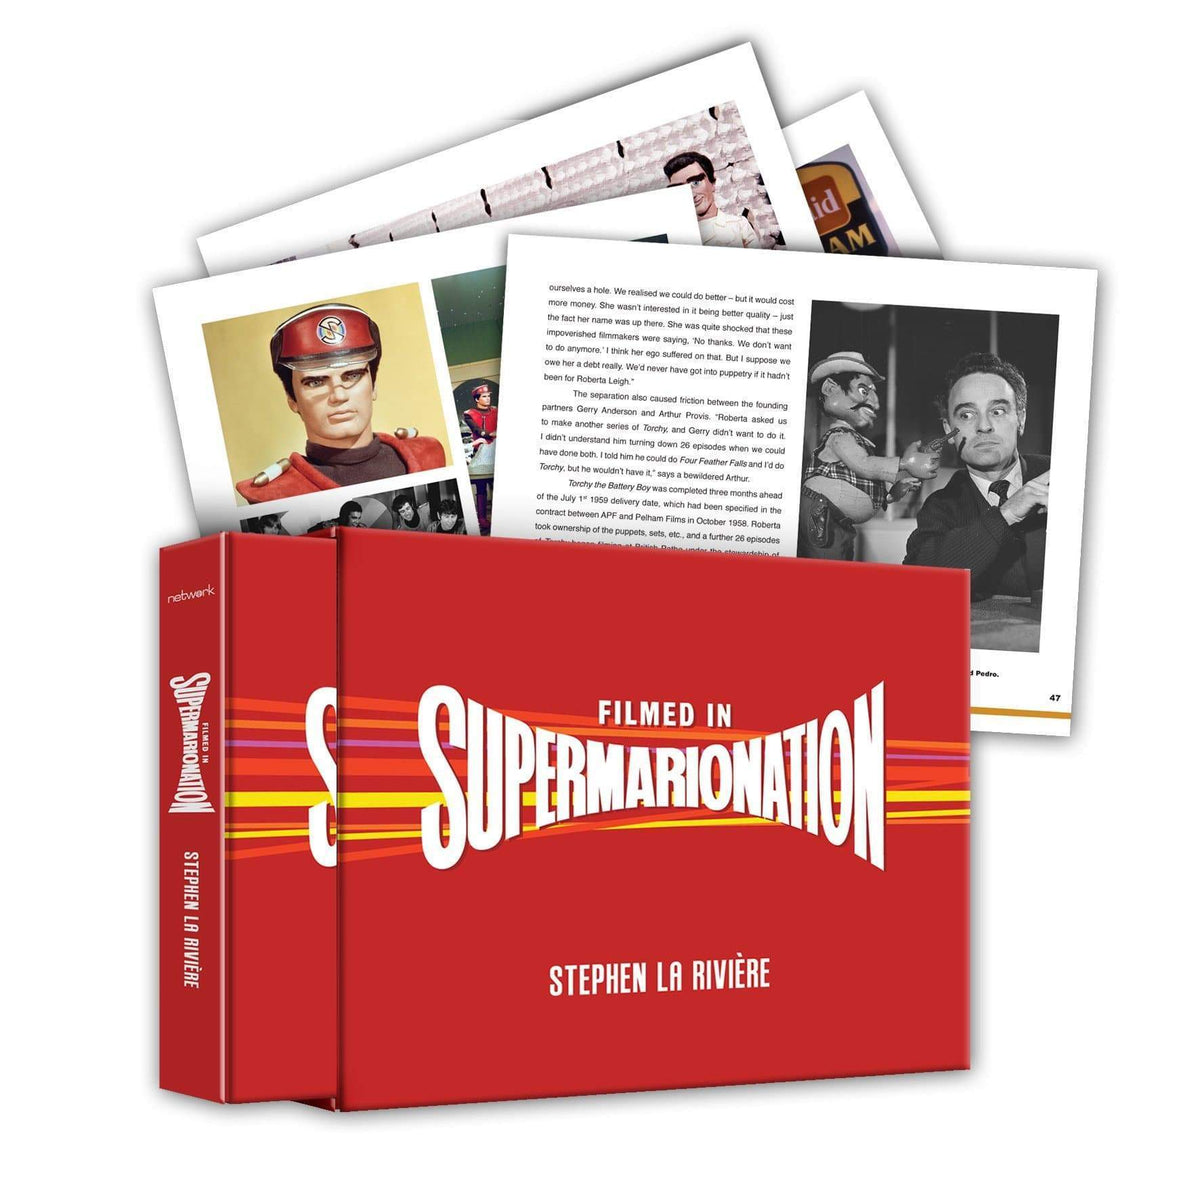 Filmed in Supermarionation Book [Hardcover with Slipcase] - The Gerry Anderson Store